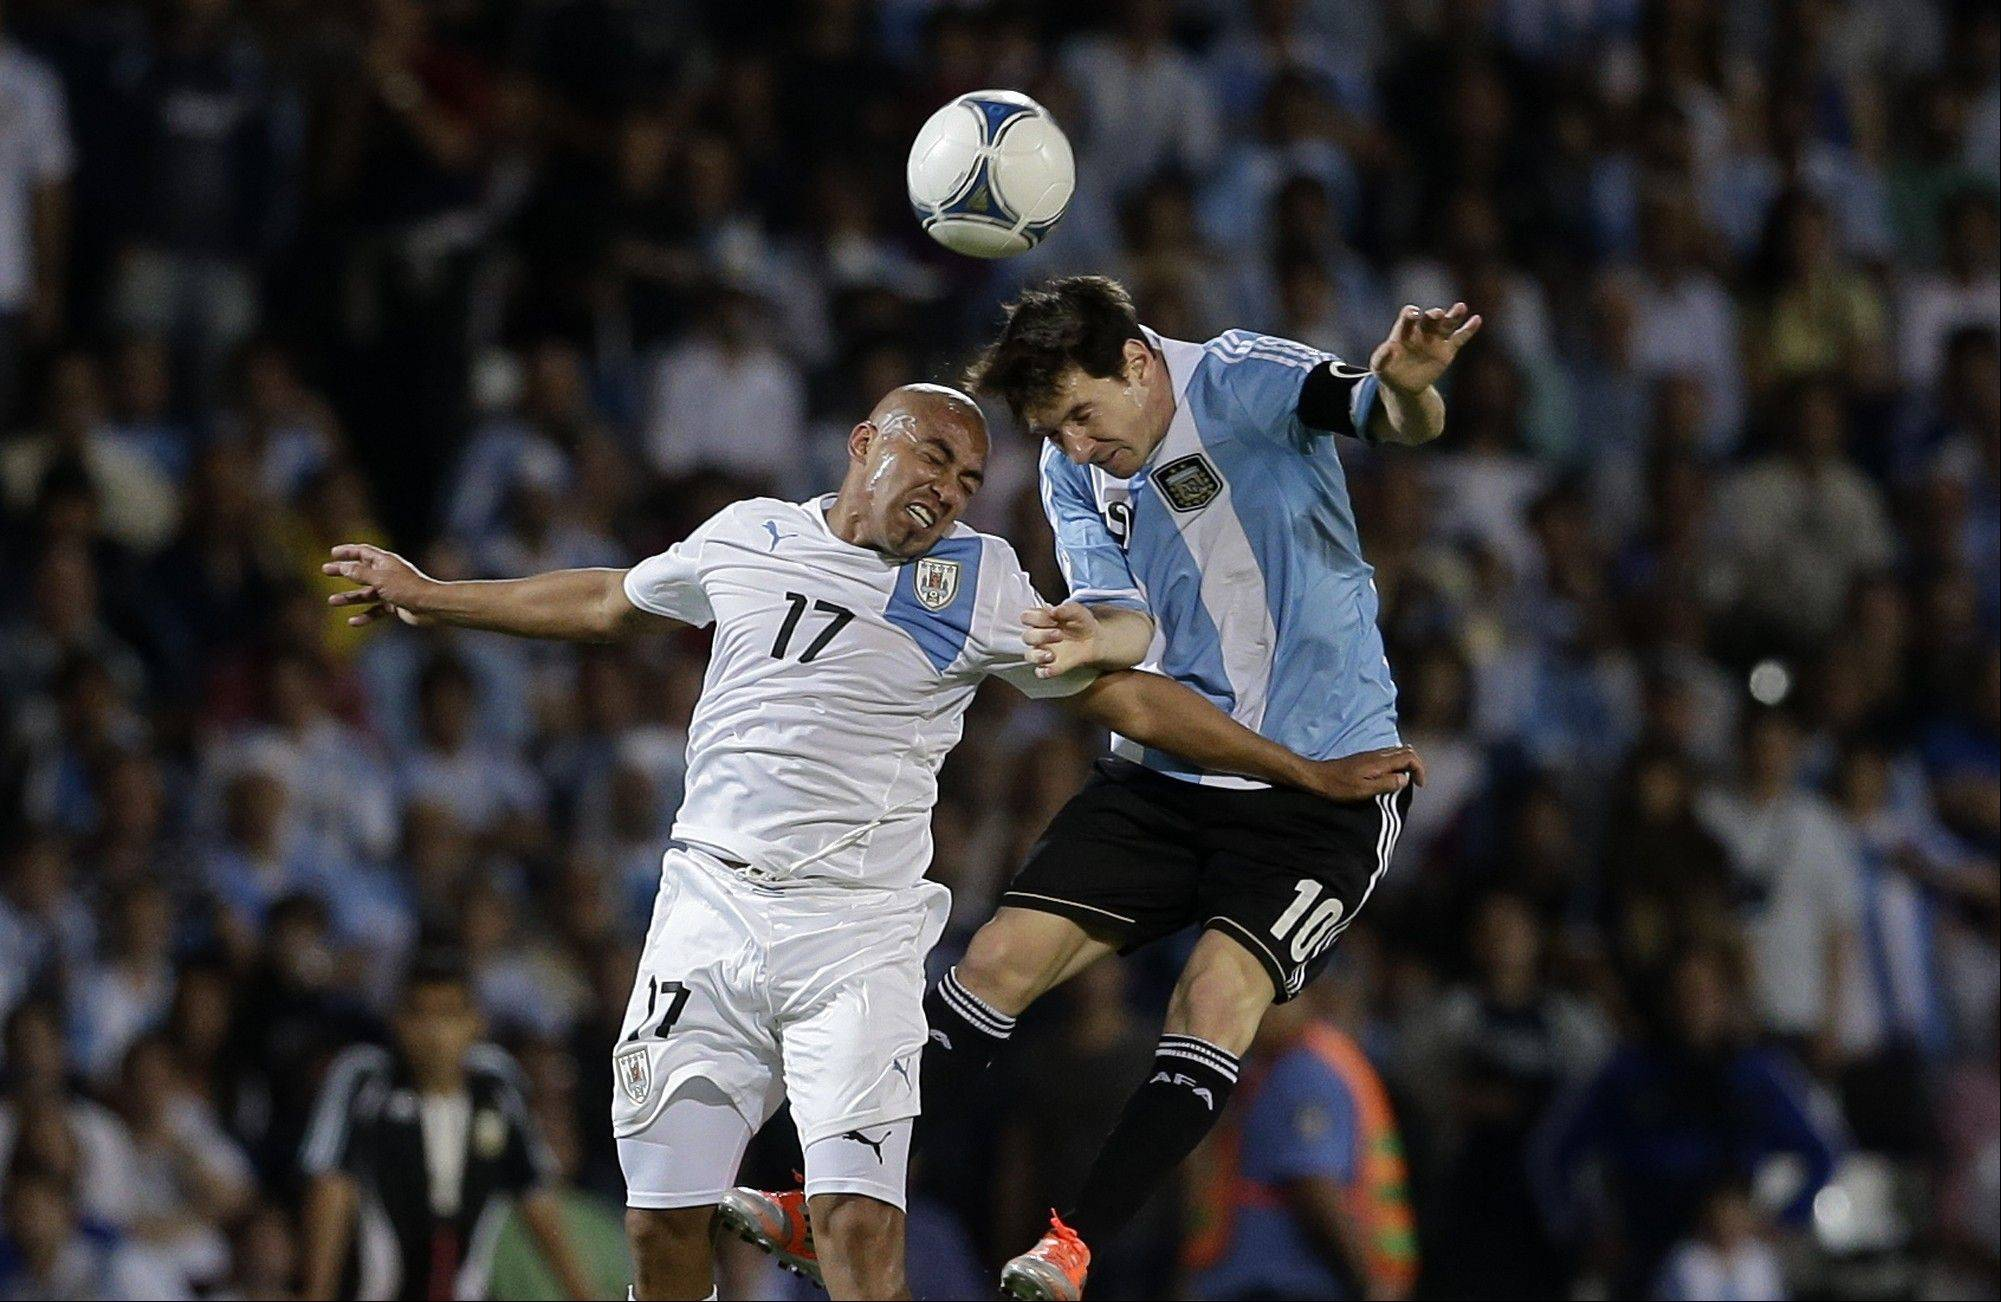 Argentina's Lionel Messi, right, heads the ball against Uruguay's Arevalo Rios, left, during a 2014 World Cup qualifying soccer match in Mendoza, Argentina, Friday, Oct. 12, 2012.